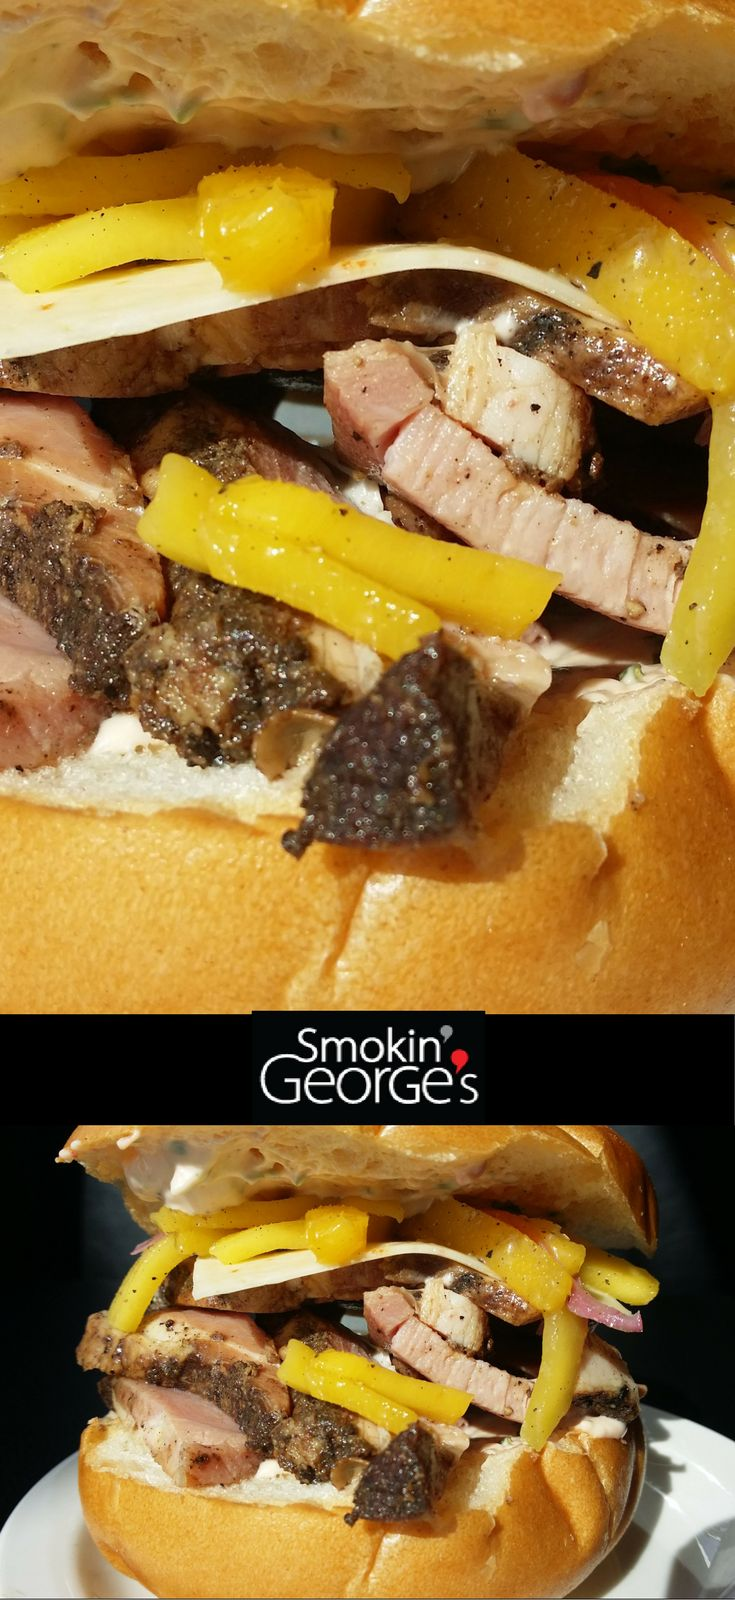 Introducing our Smokin' George's special: Ham Sandwich with Havarti Cheese, and Mango Slaw. Slow food, fast.